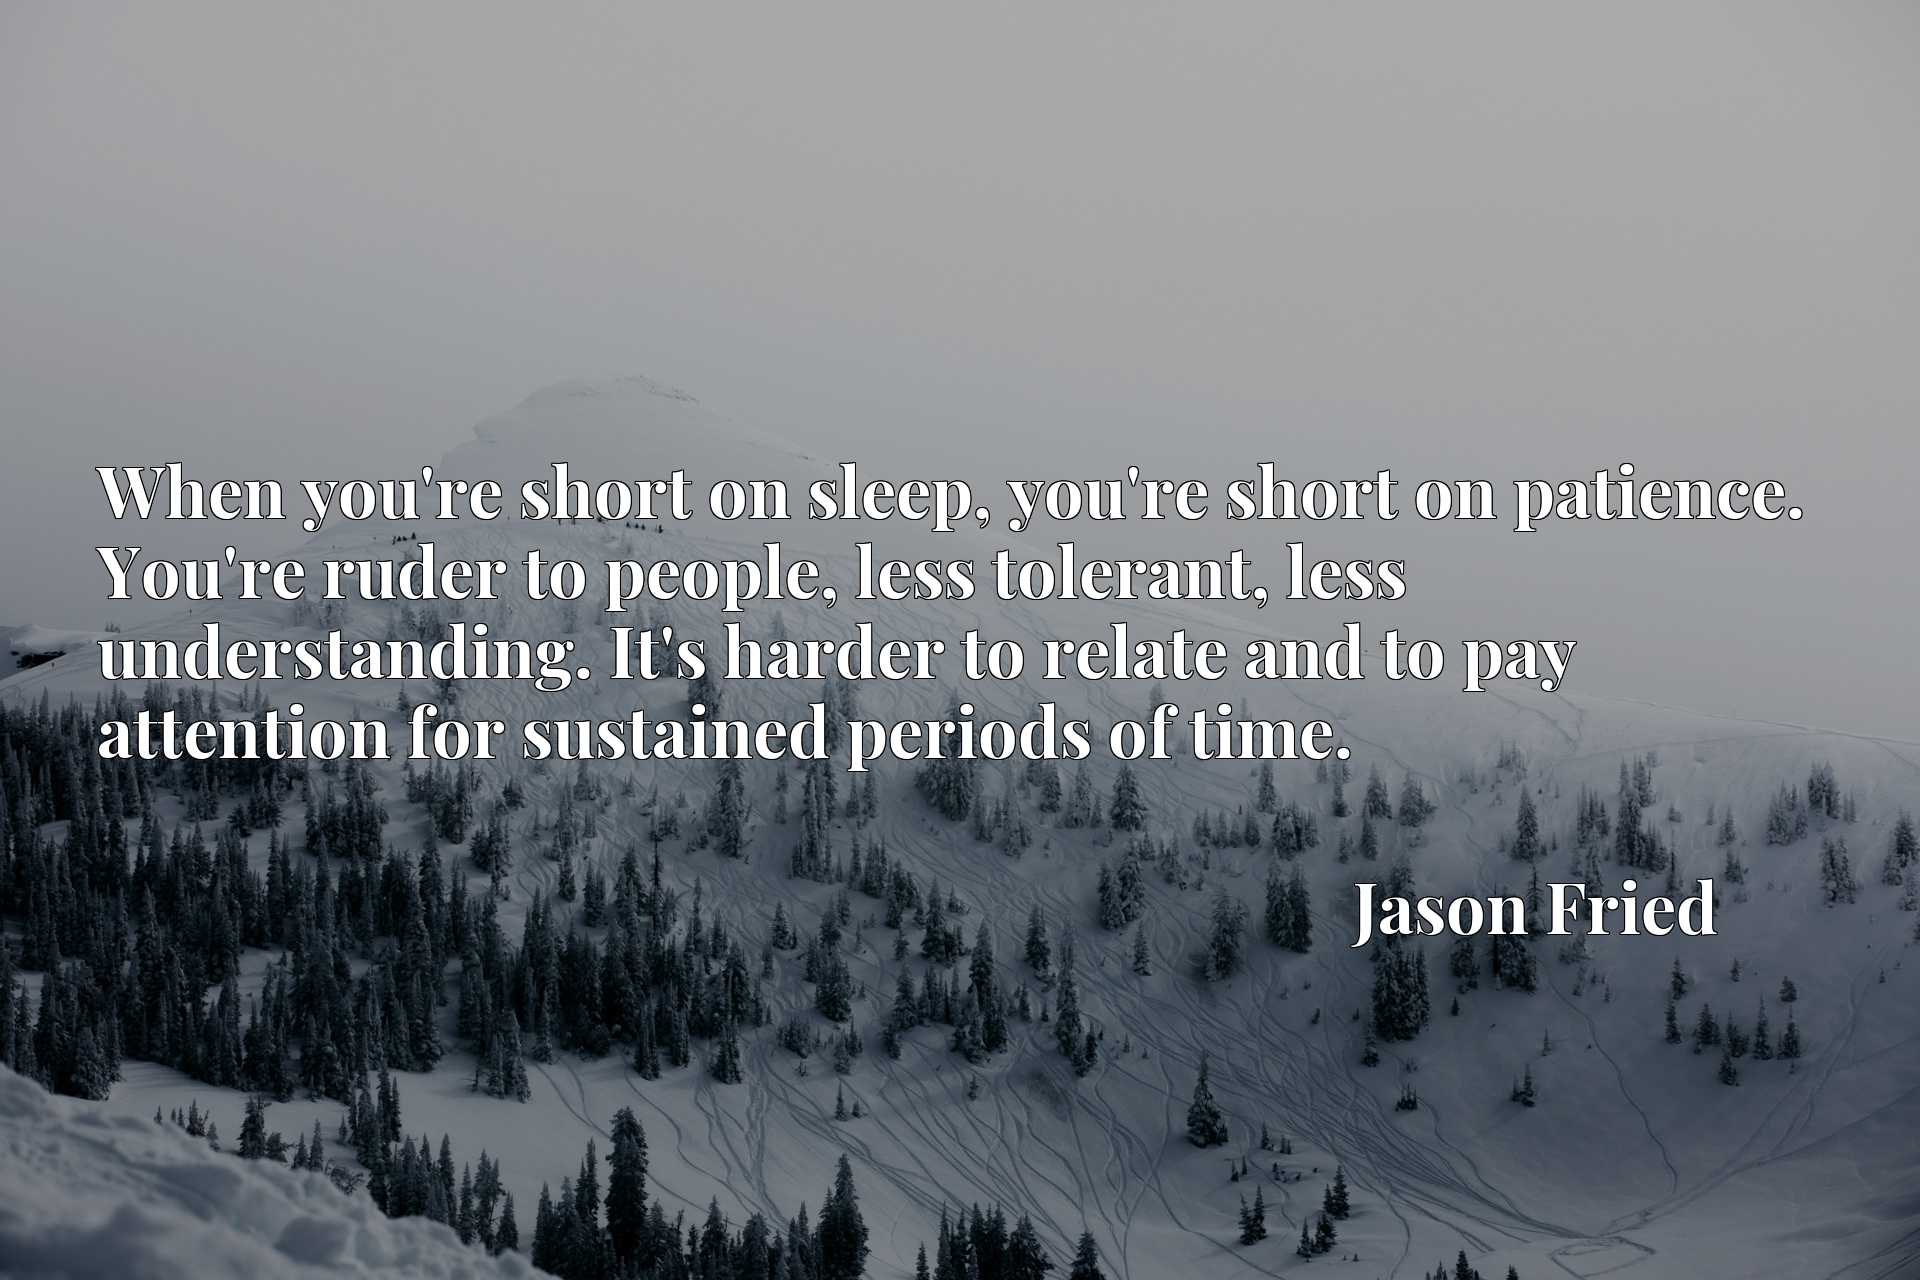 When you're short on sleep, you're short on patience. You're ruder to people, less tolerant, less understanding. It's harder to relate and to pay attention for sustained periods of time.